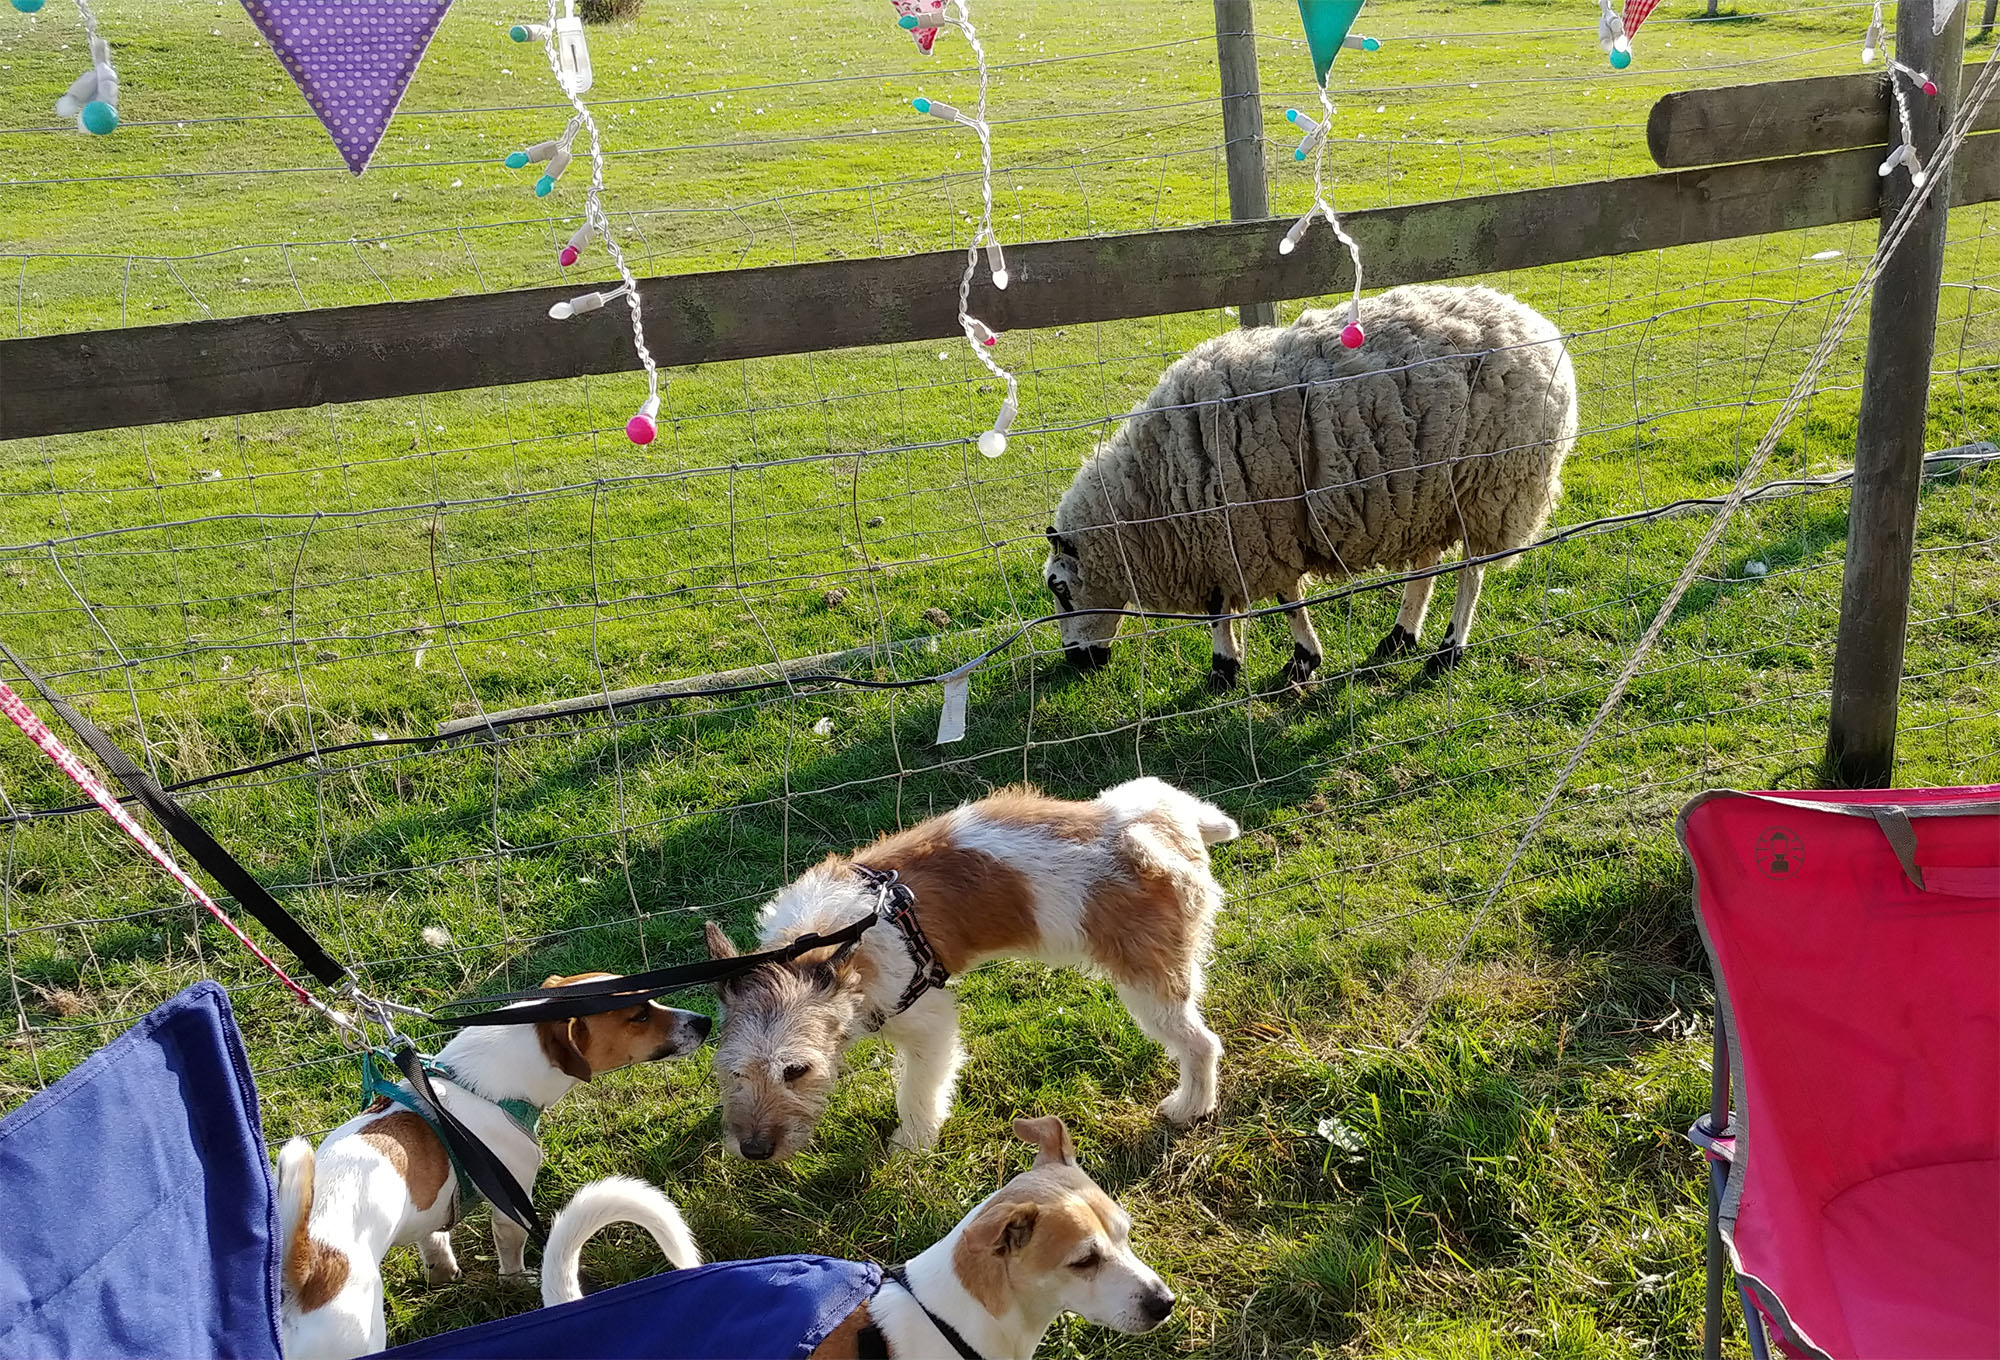 We were a bit worried about how the dogs would react to having farm animals so close by (this is literally outside the tent door as you can see, albeit separated by a wire fence) but all that happened was Enrique tried to lift his leg on a sheep :-)